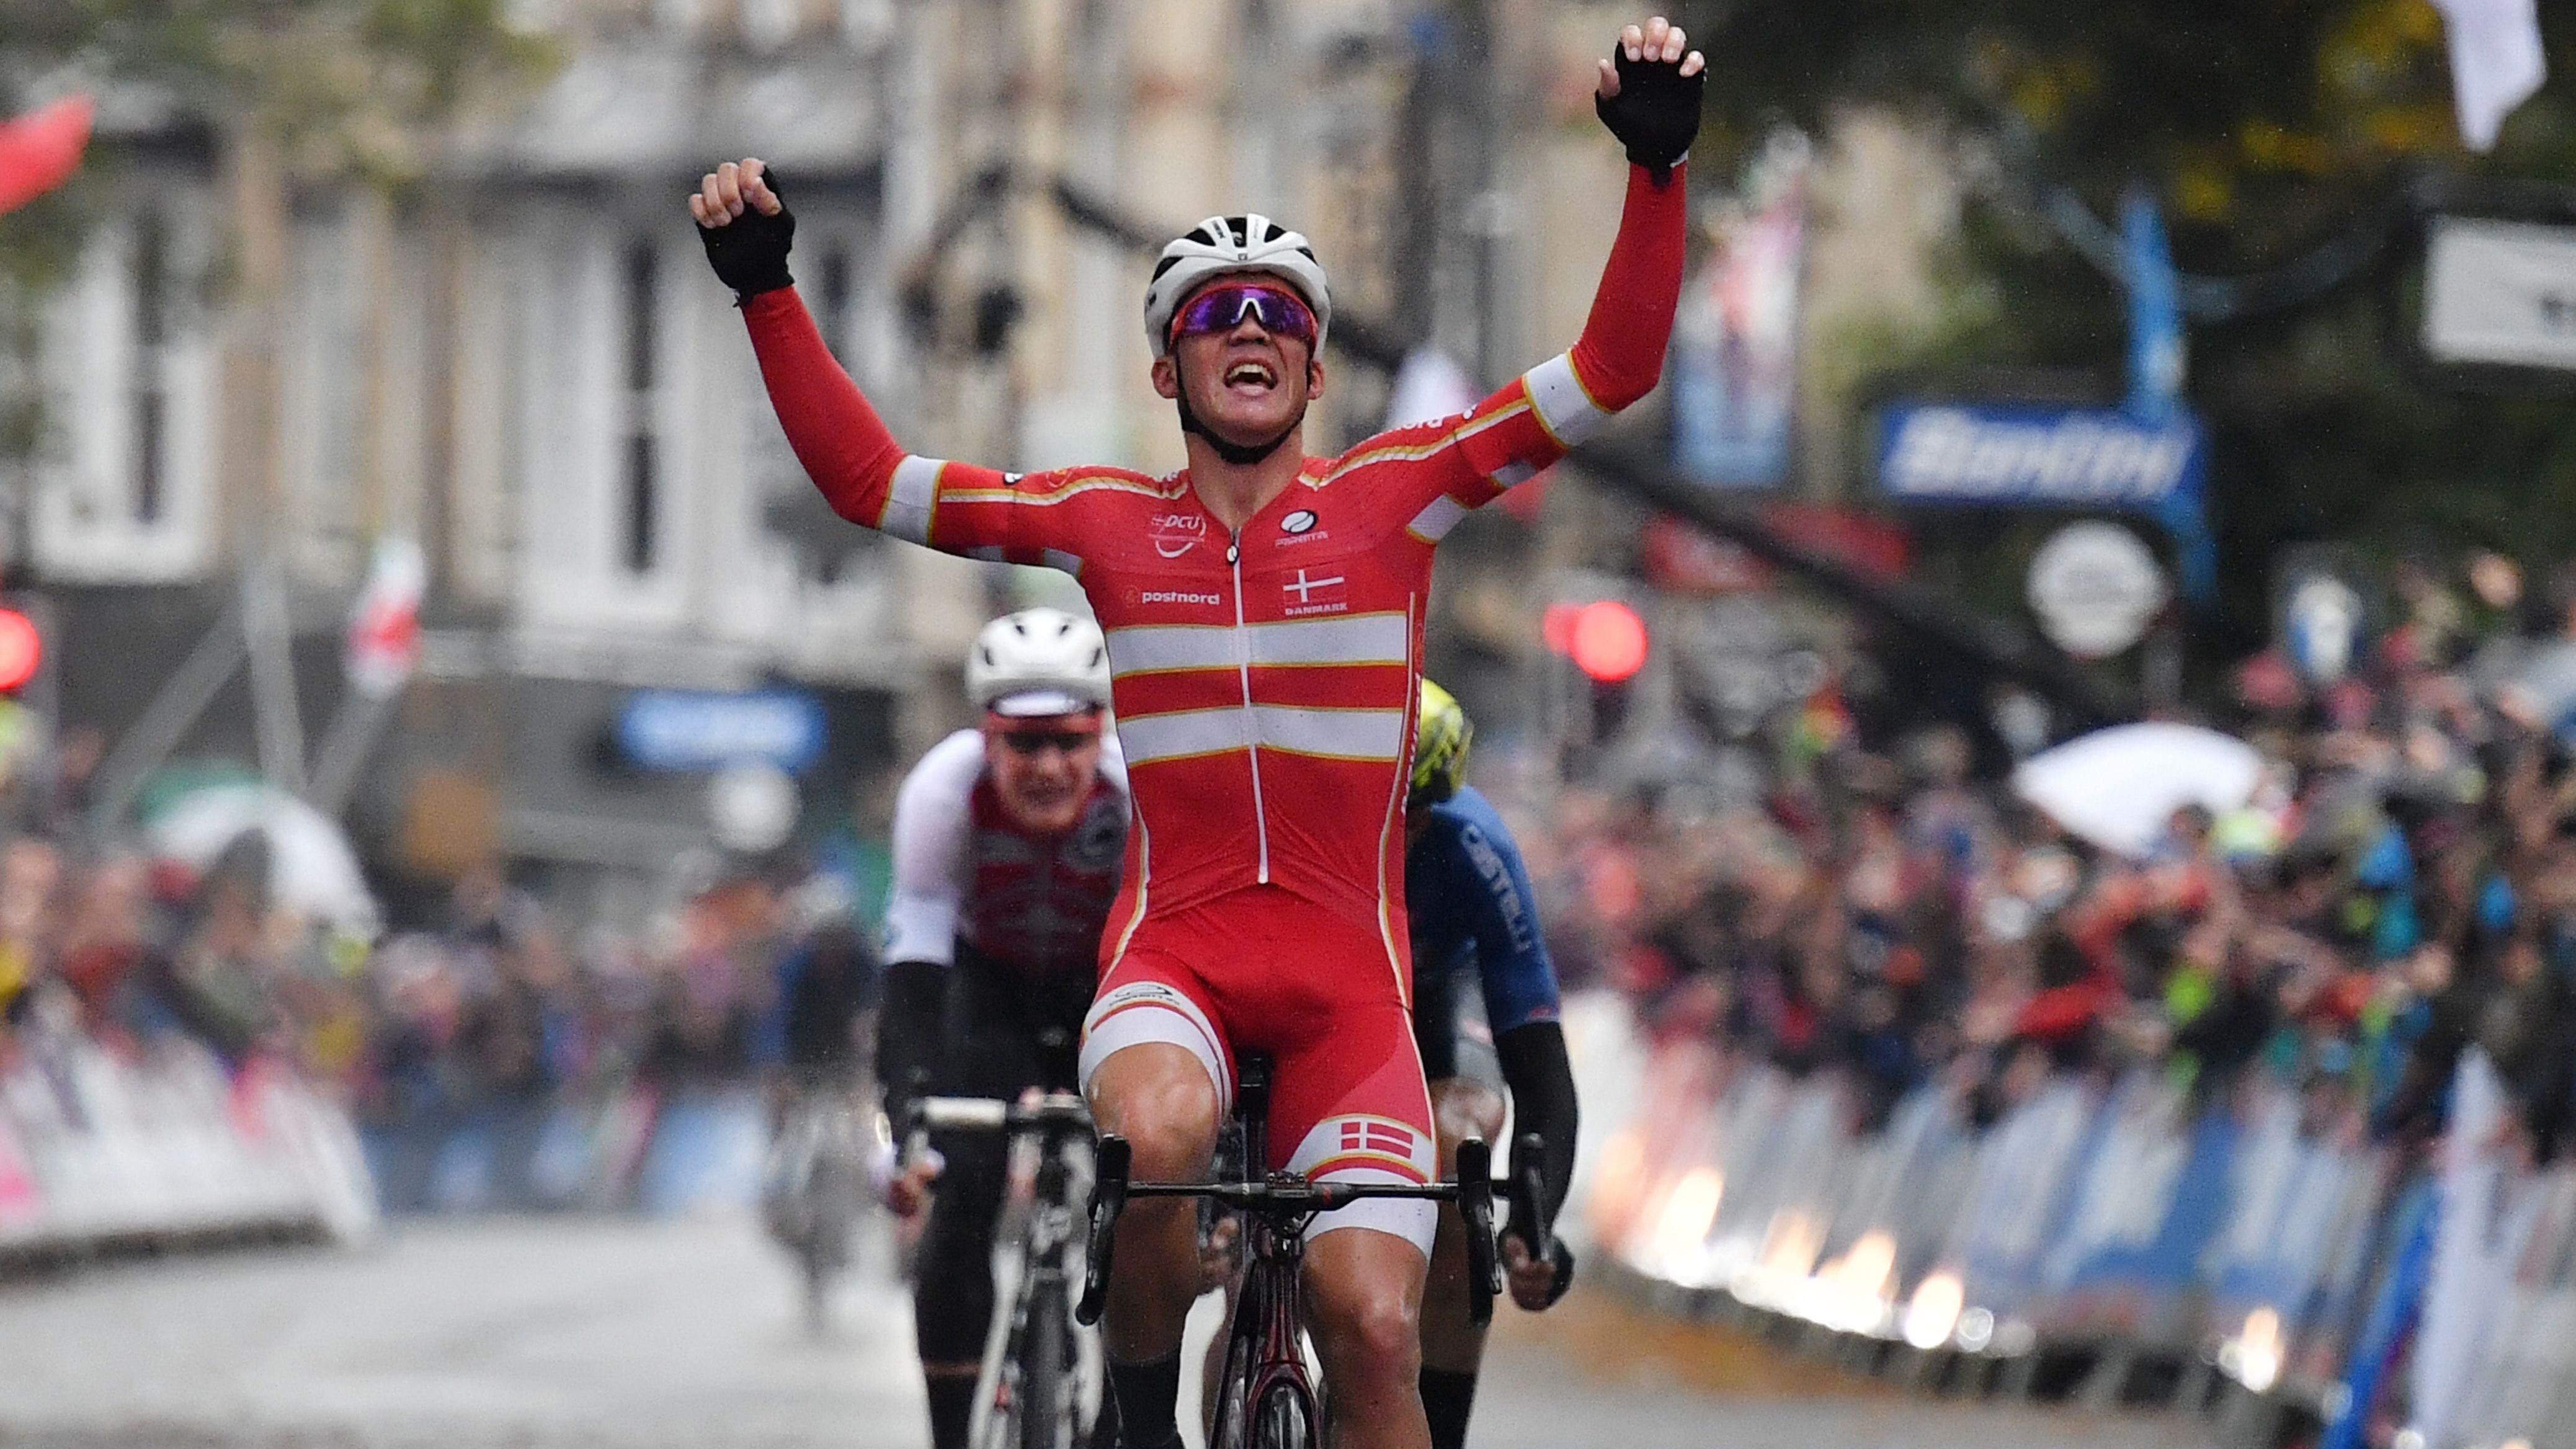 Tour de france stage 7 betting tips sports betting off the board